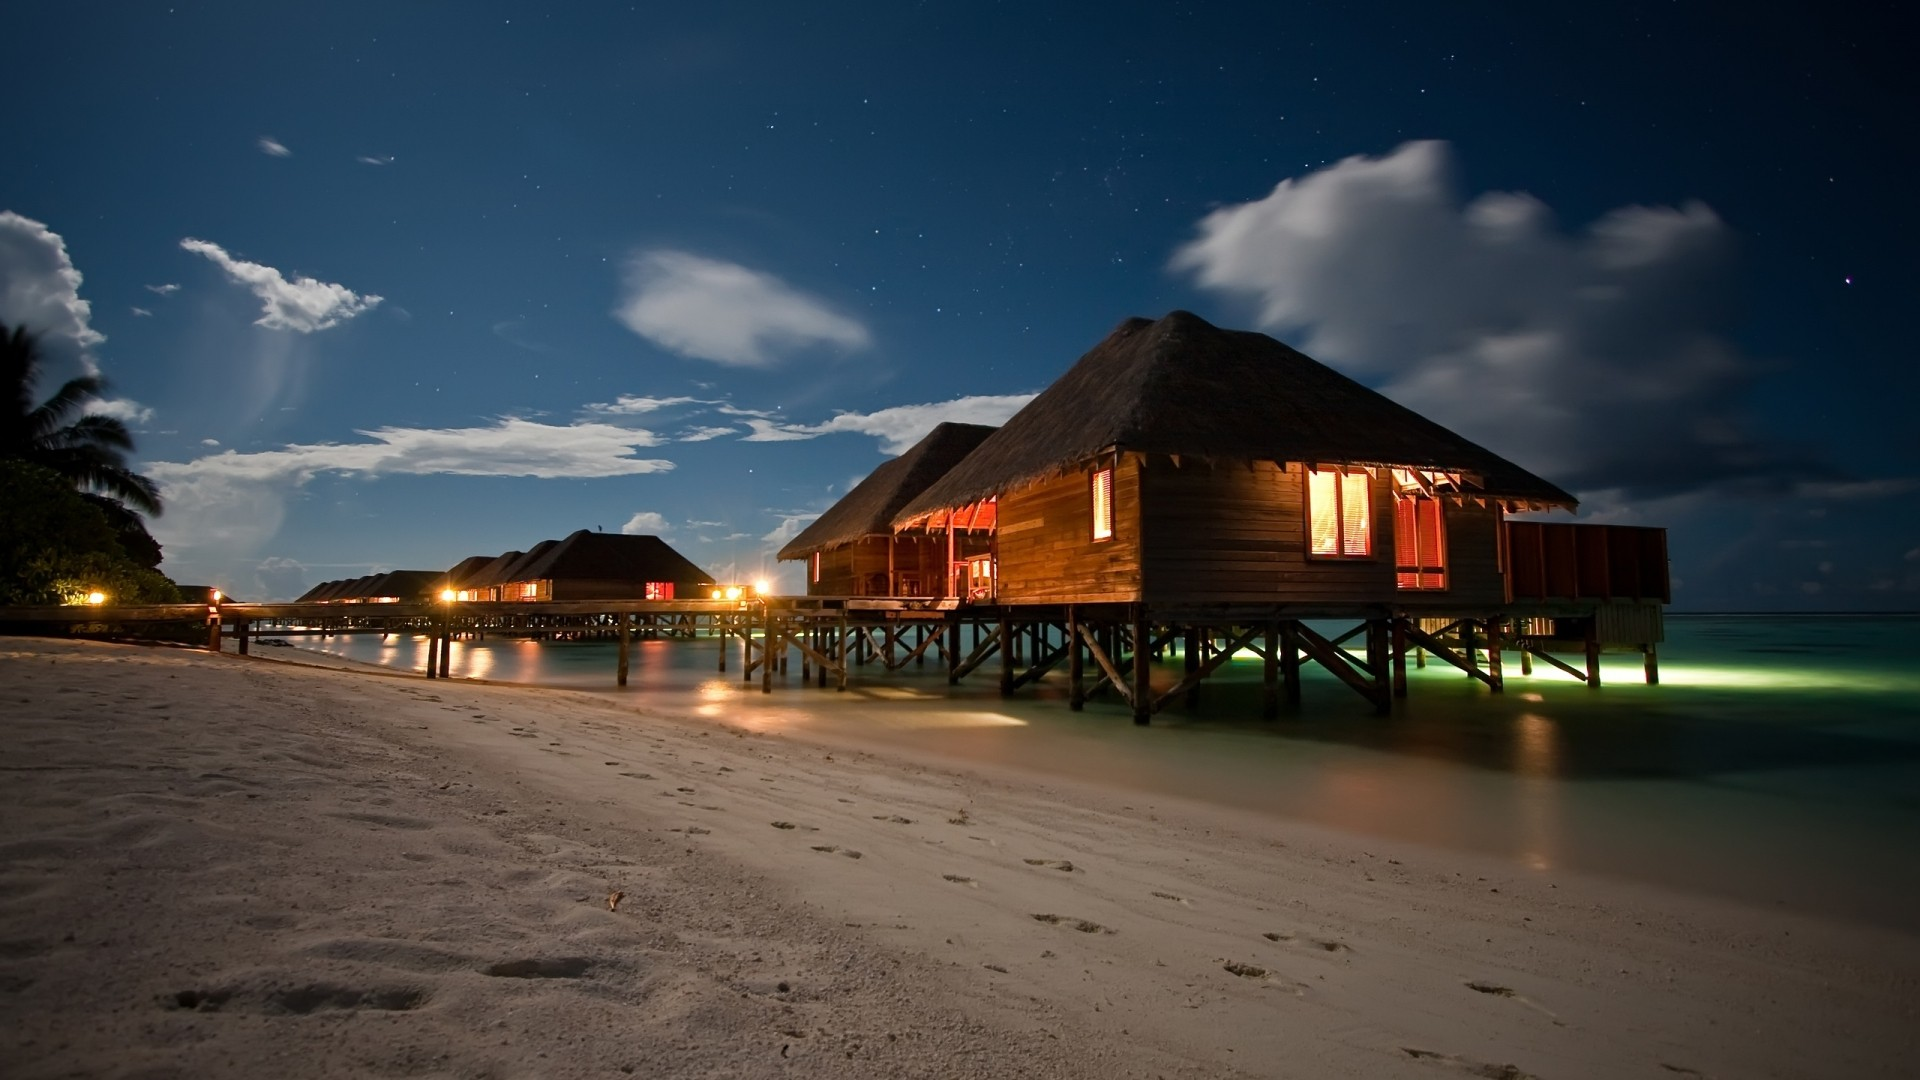 ws_Beach_Houses_at_Night_1920x1080